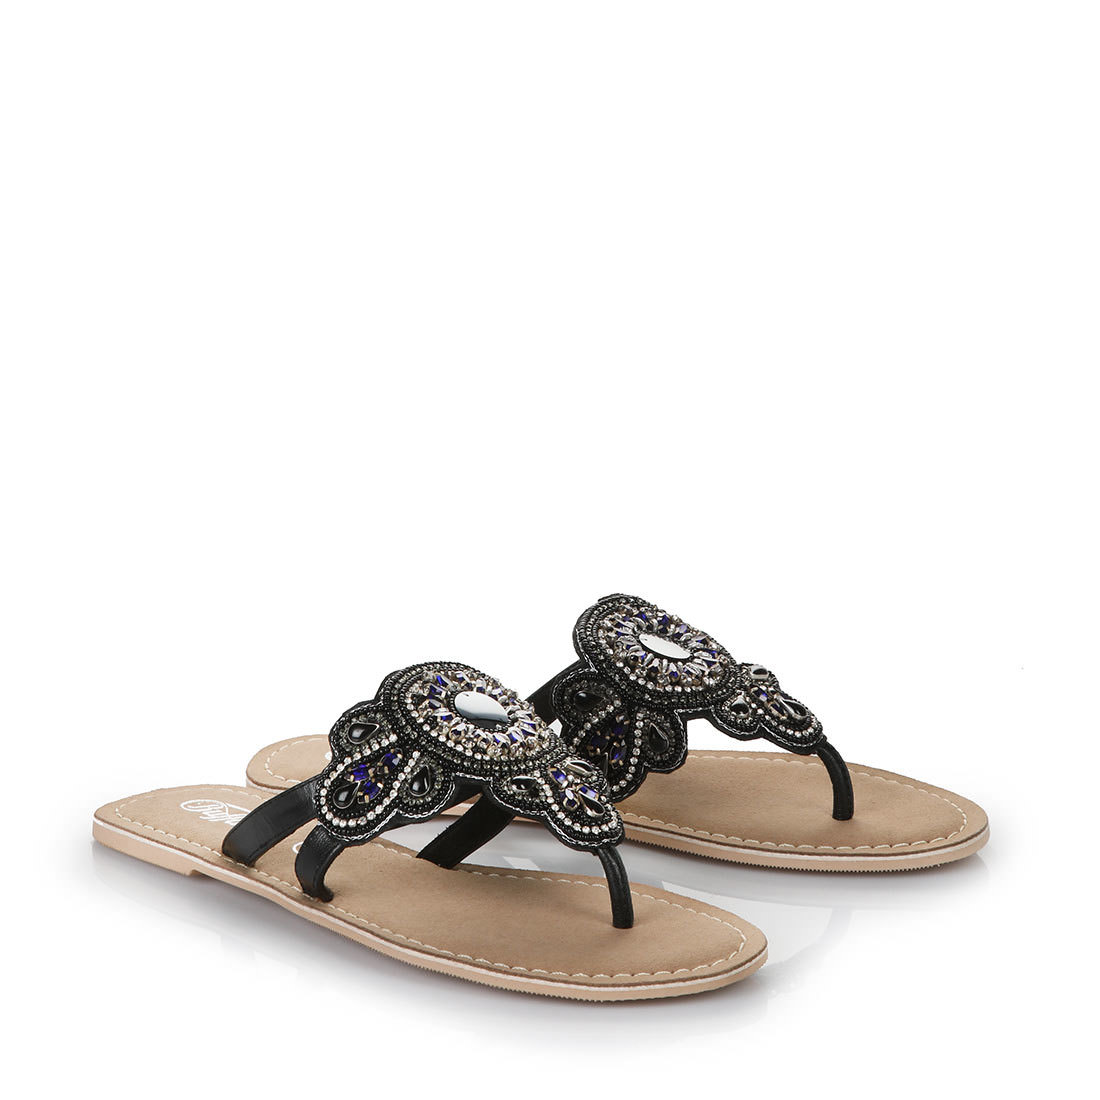 buffalo flip flop sandals in black buy online in buffalo. Black Bedroom Furniture Sets. Home Design Ideas